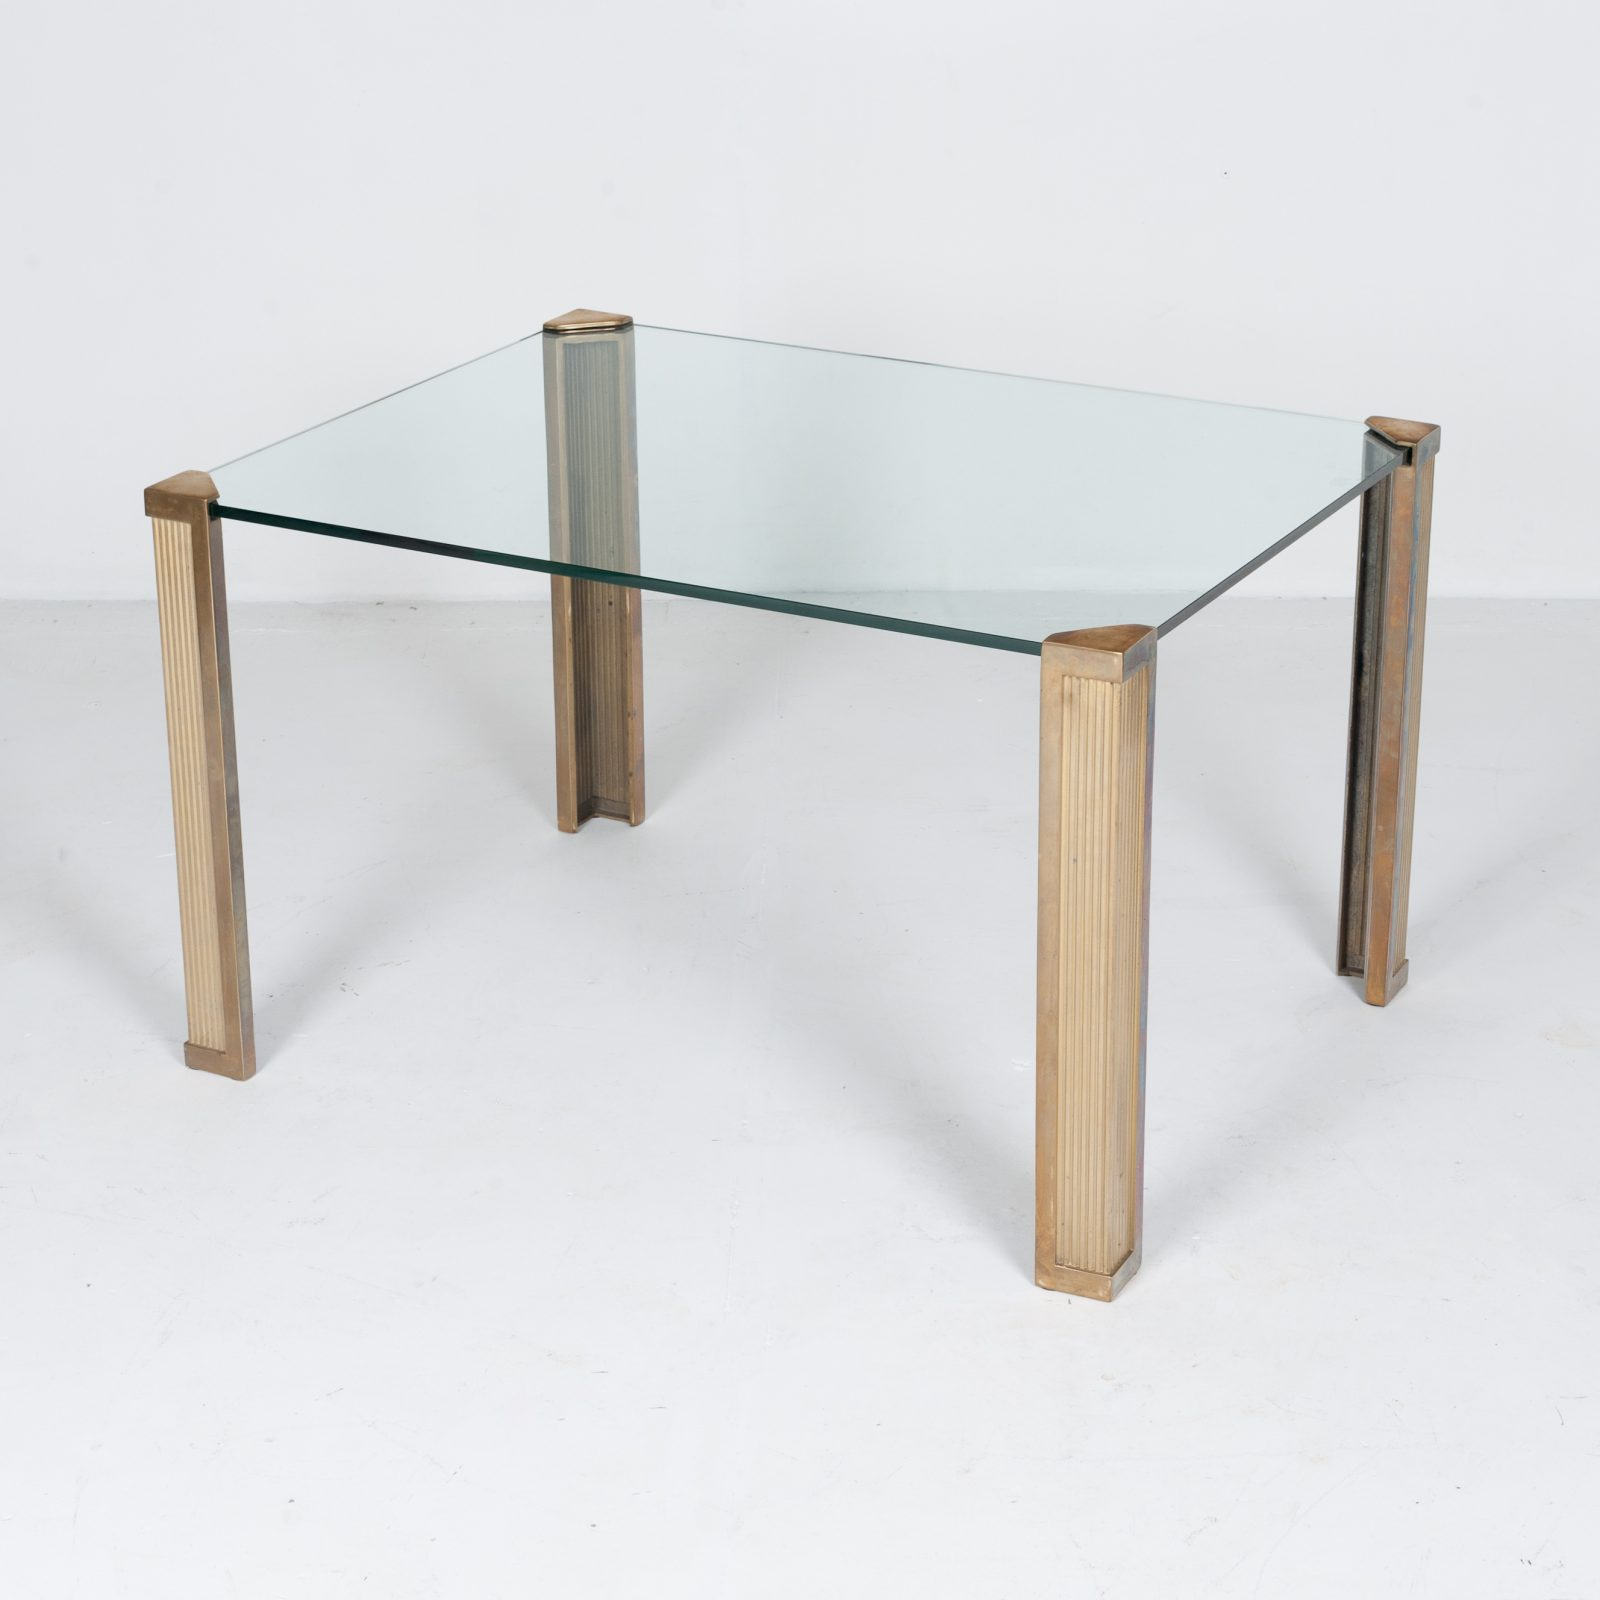 Dining Table With Solid Brass Cast Legs And Glass Top By Peter Ghyczy, 1970s, The Netherlands 90